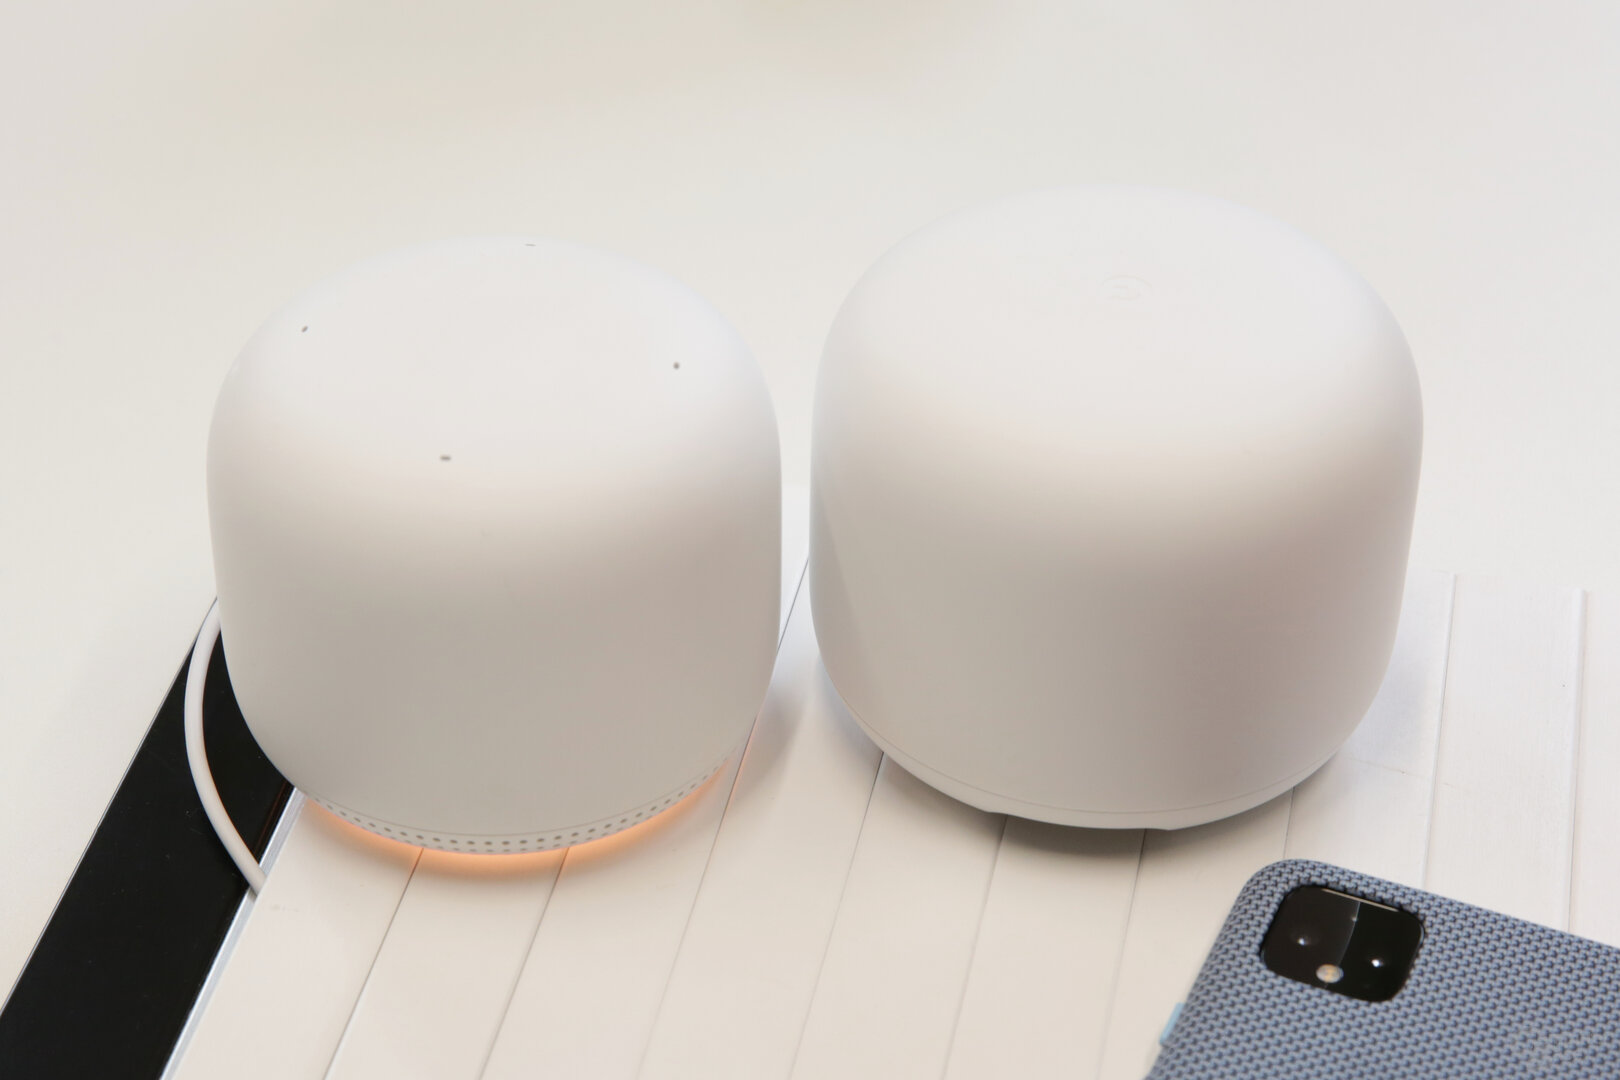 Access Point links, Router rechts